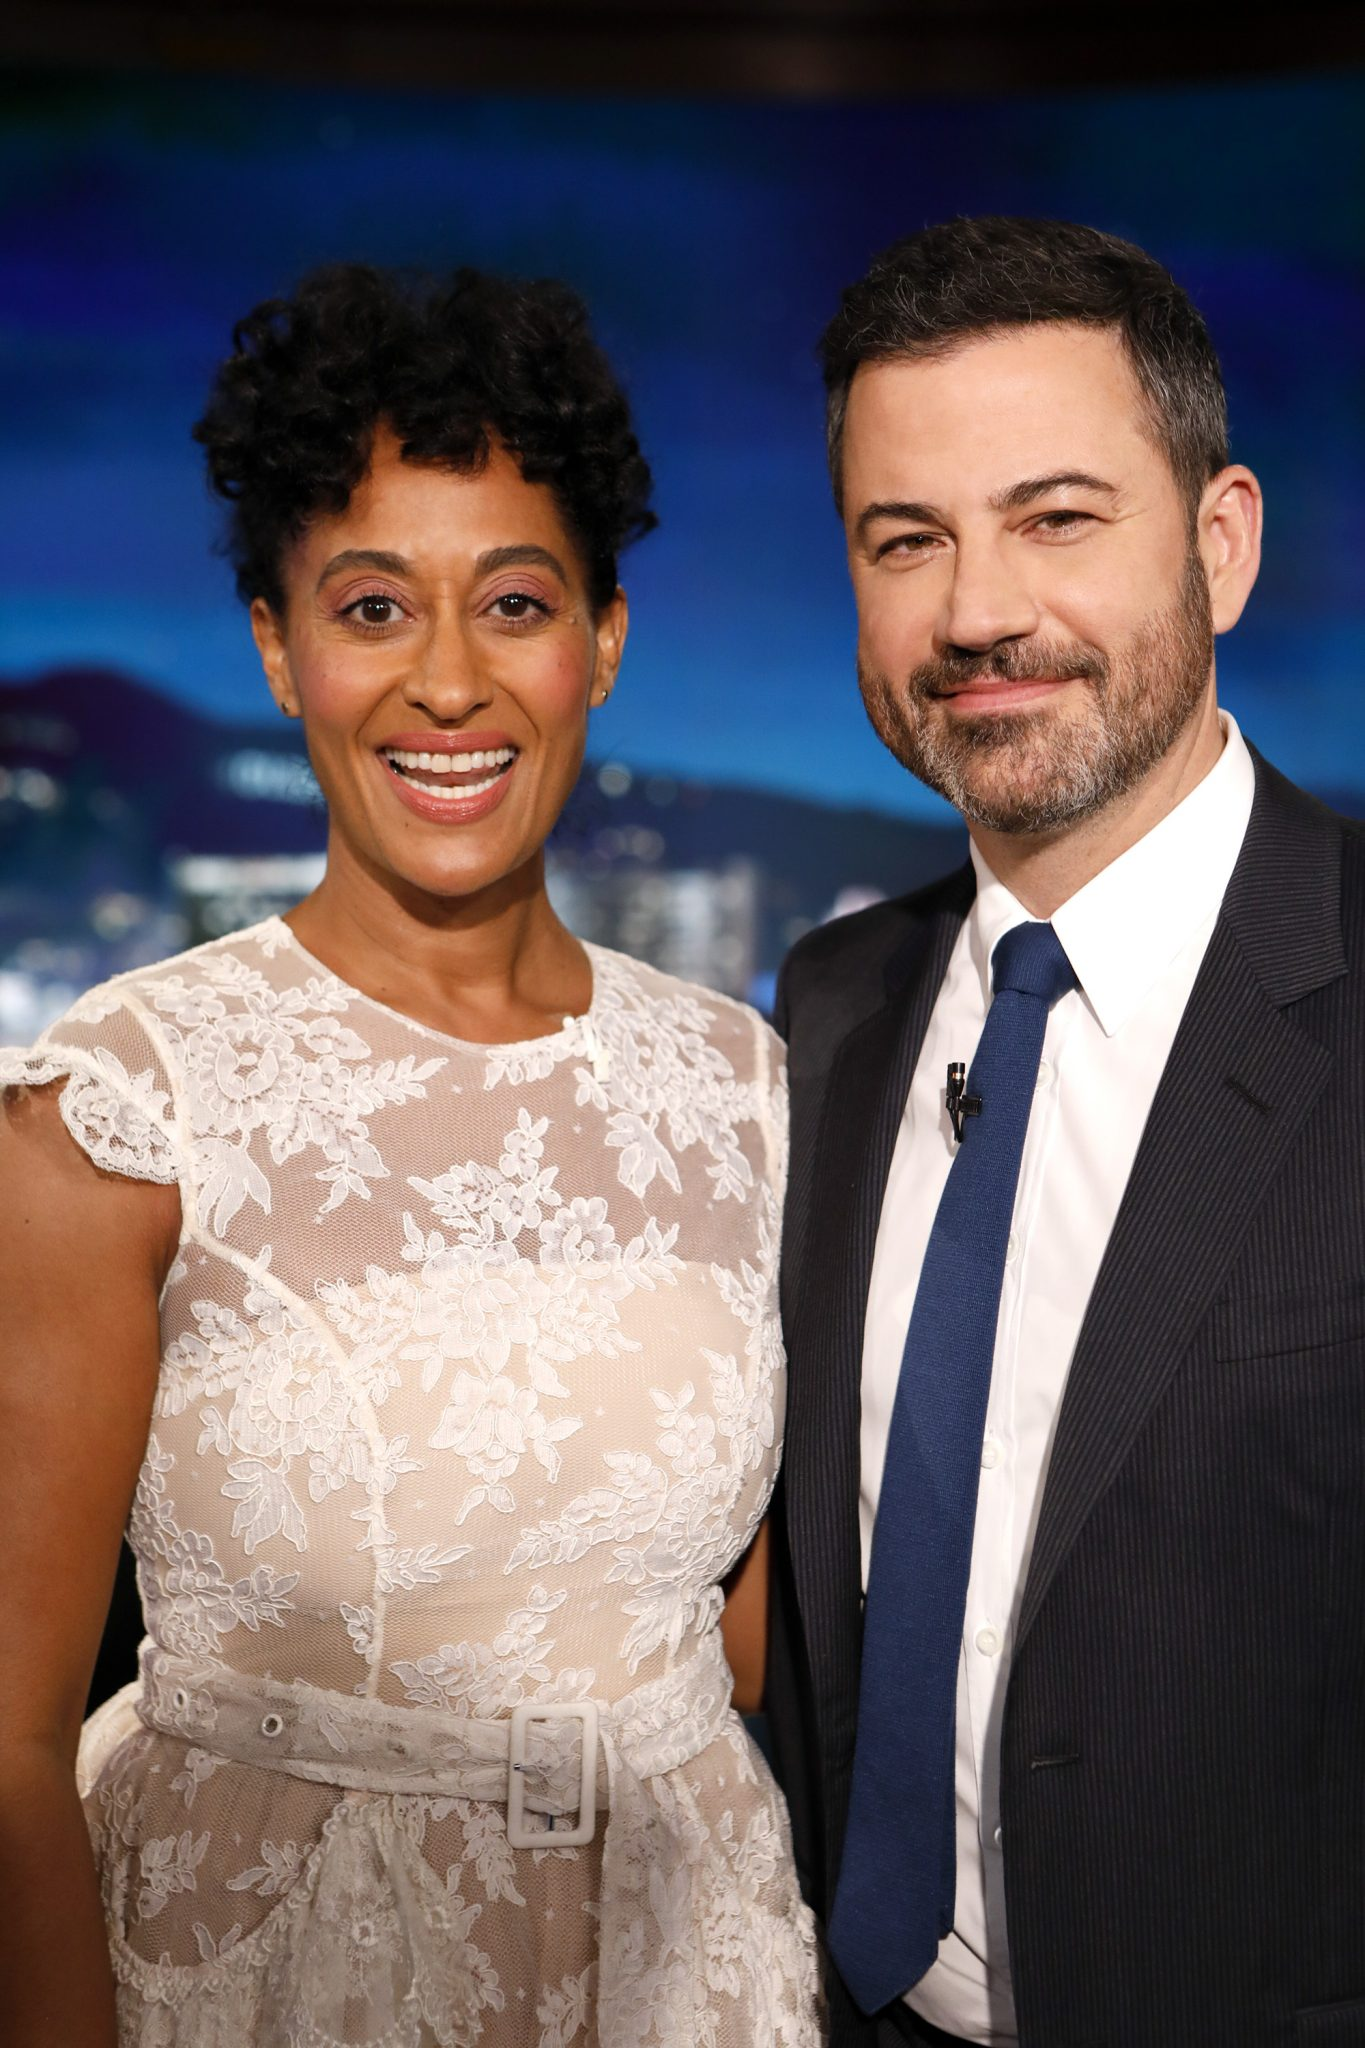 In Case You Missed It: Tracee Ellis Ross On Jimmy Kimmel Live